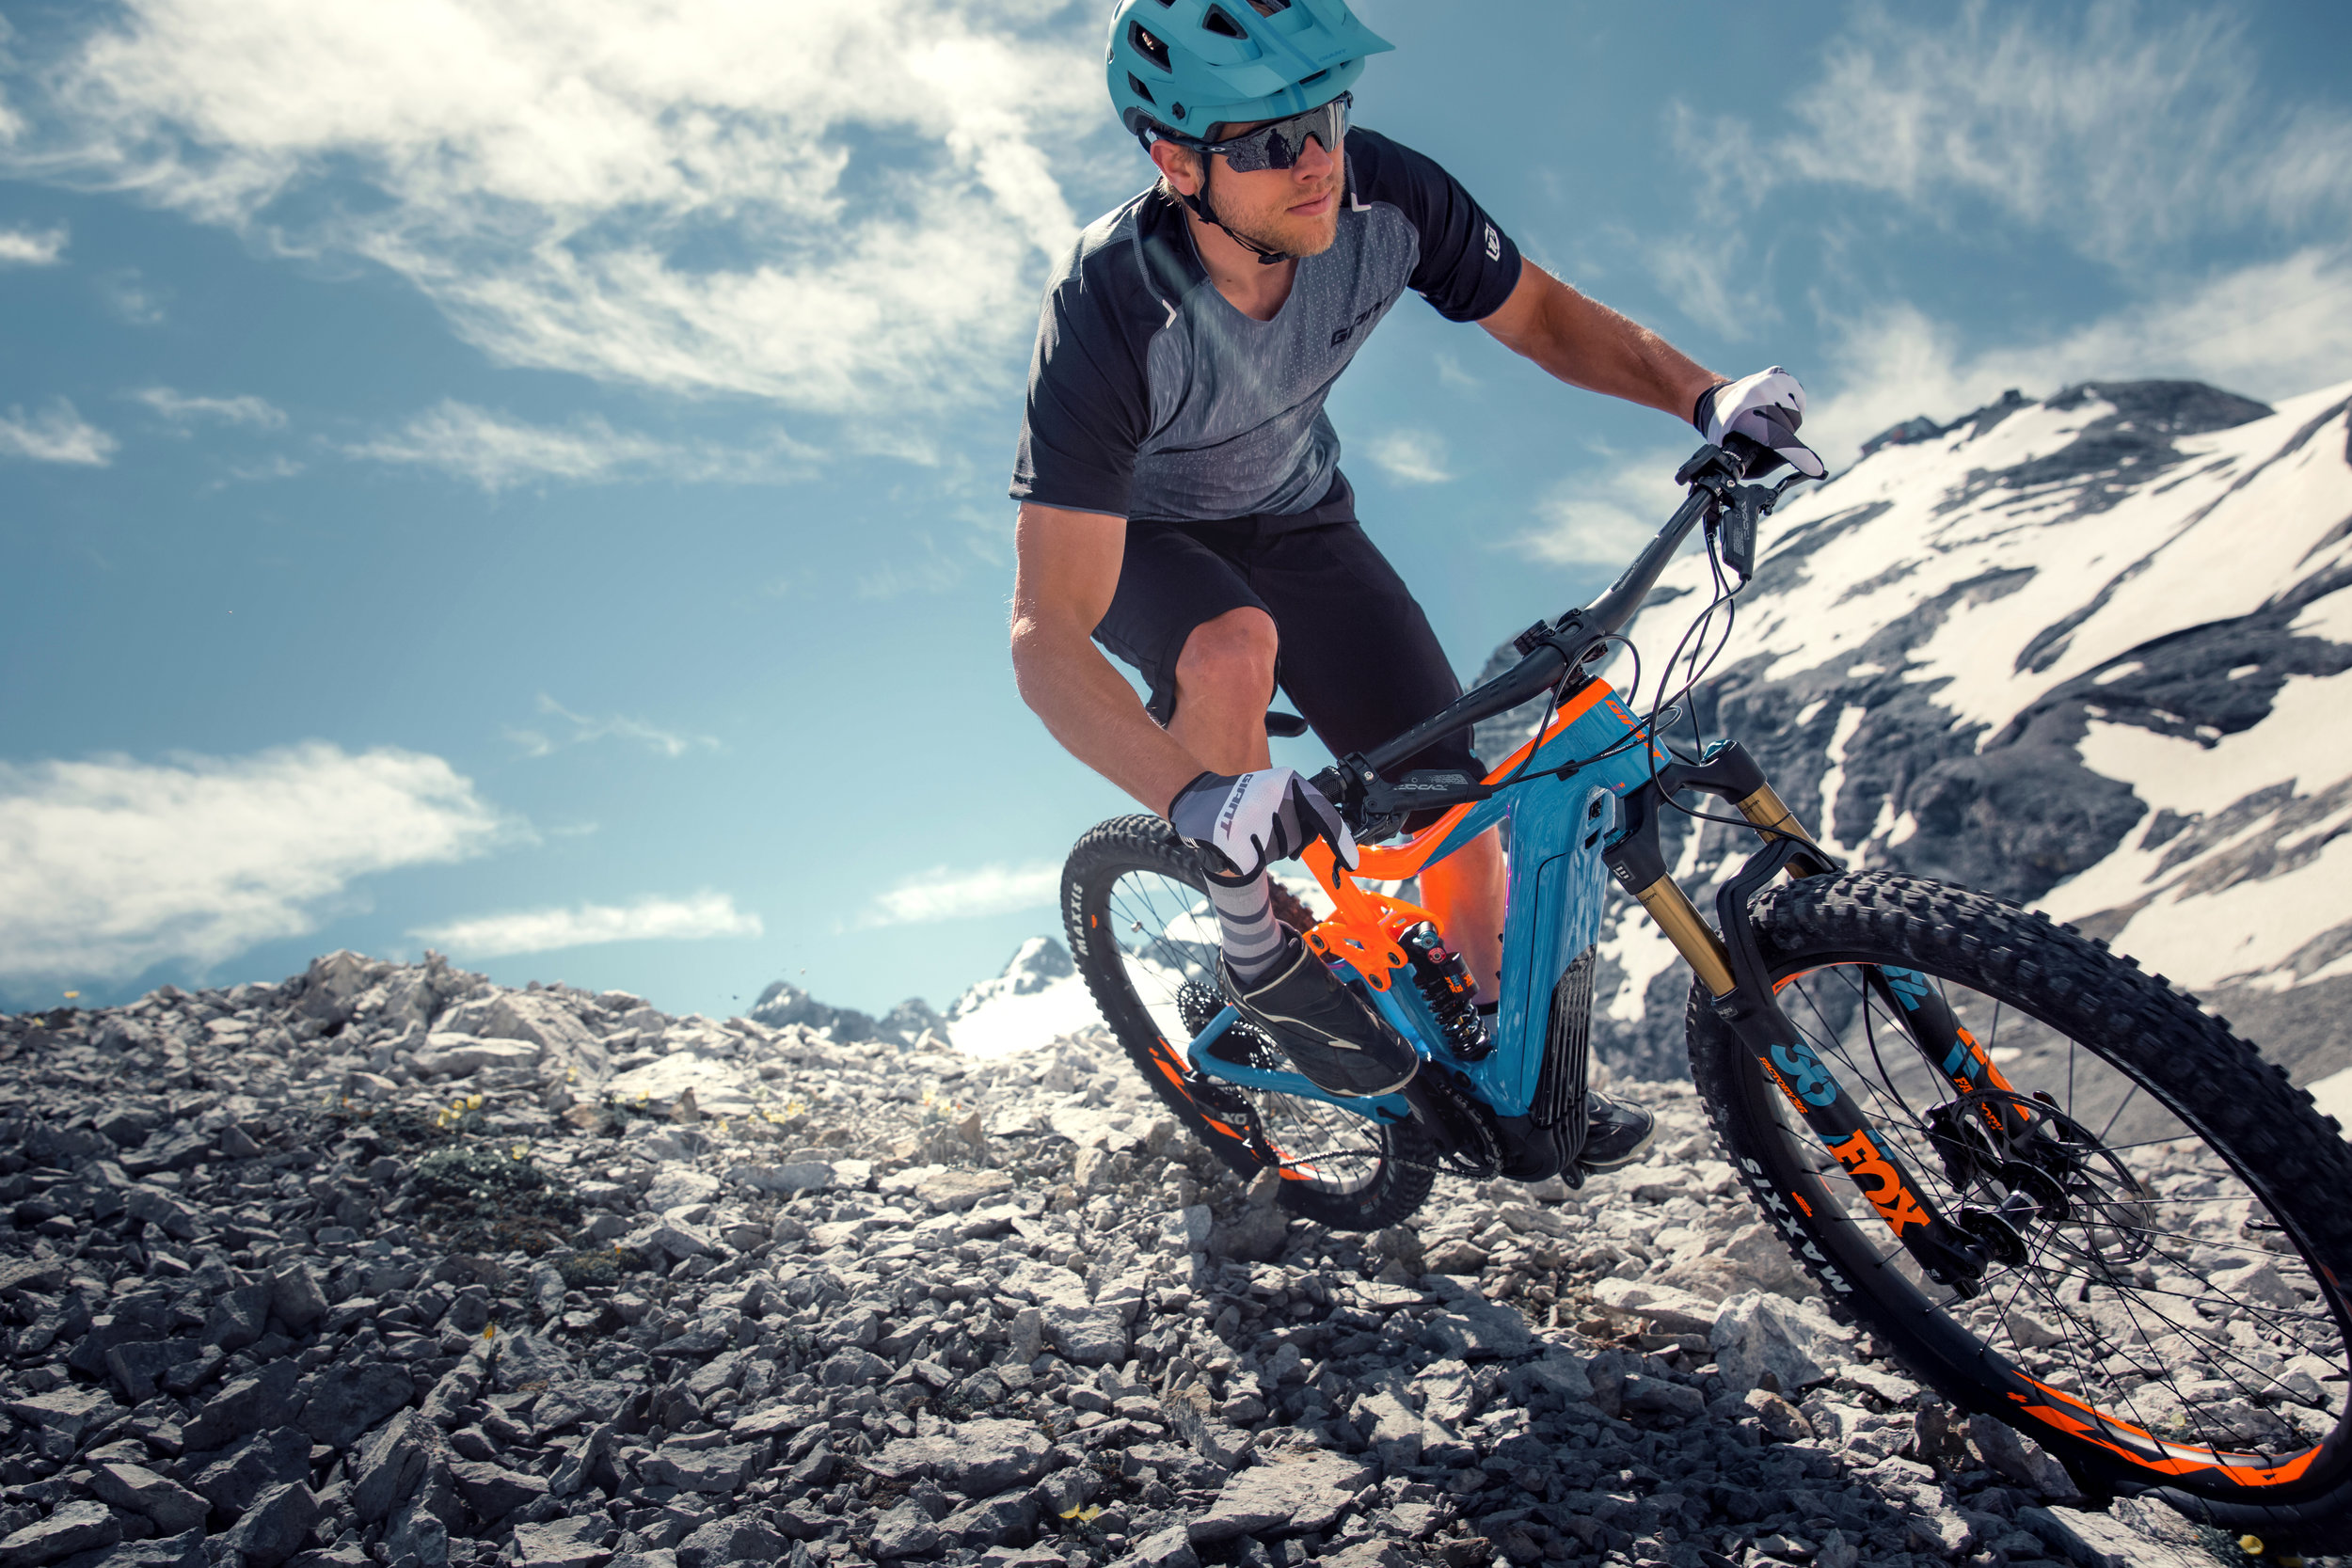 The new Giant Trace E+ 2 Pro trail bike features the new, Yamaha-built SyncDrive Pro motor, and 140mm Maestro rear suspension.  (Giant USA)